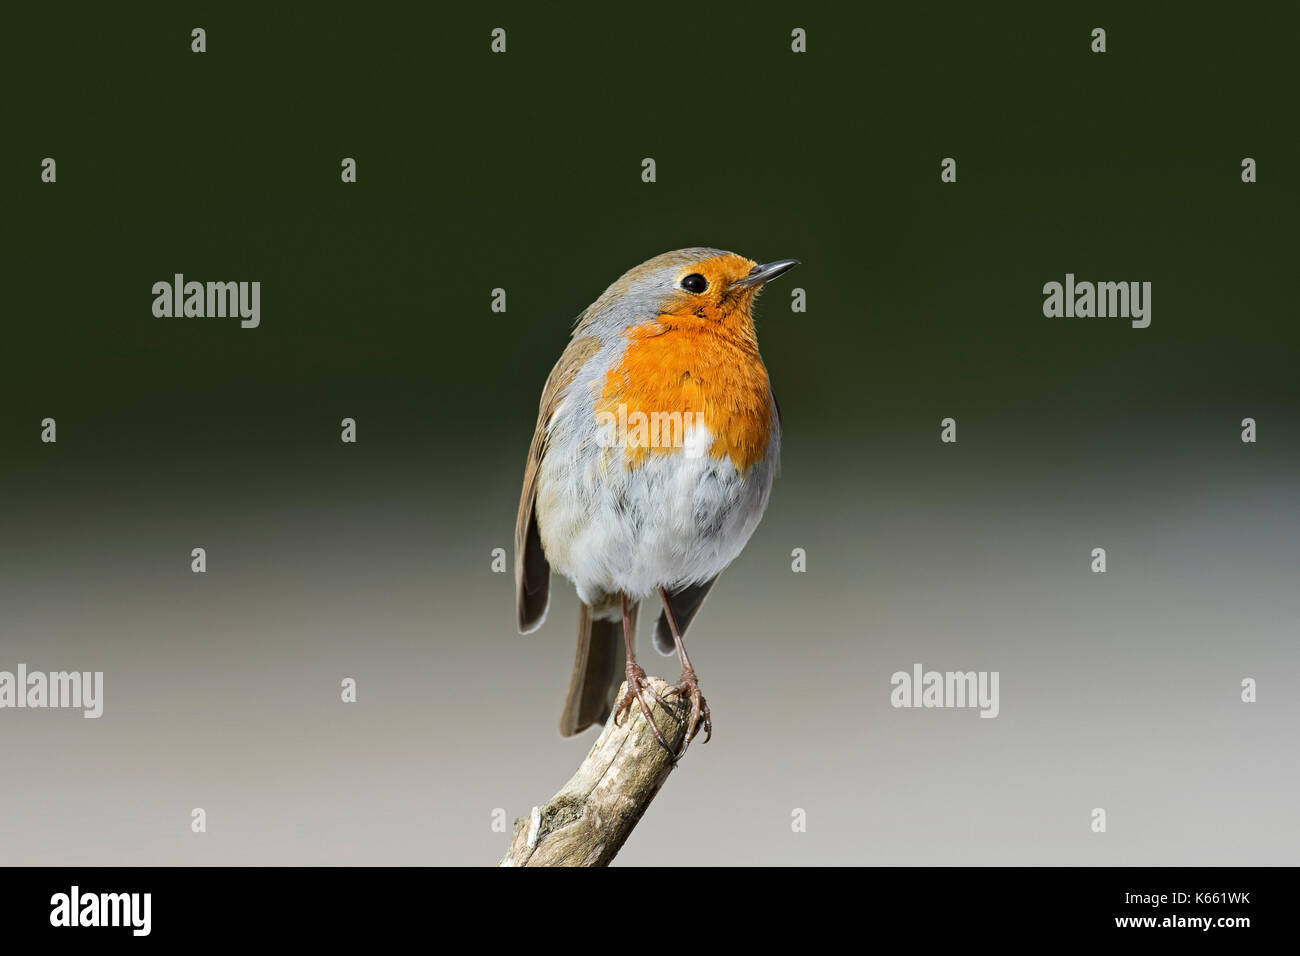 European robin (Erithacus rubecula) perched on branch Stock Photo